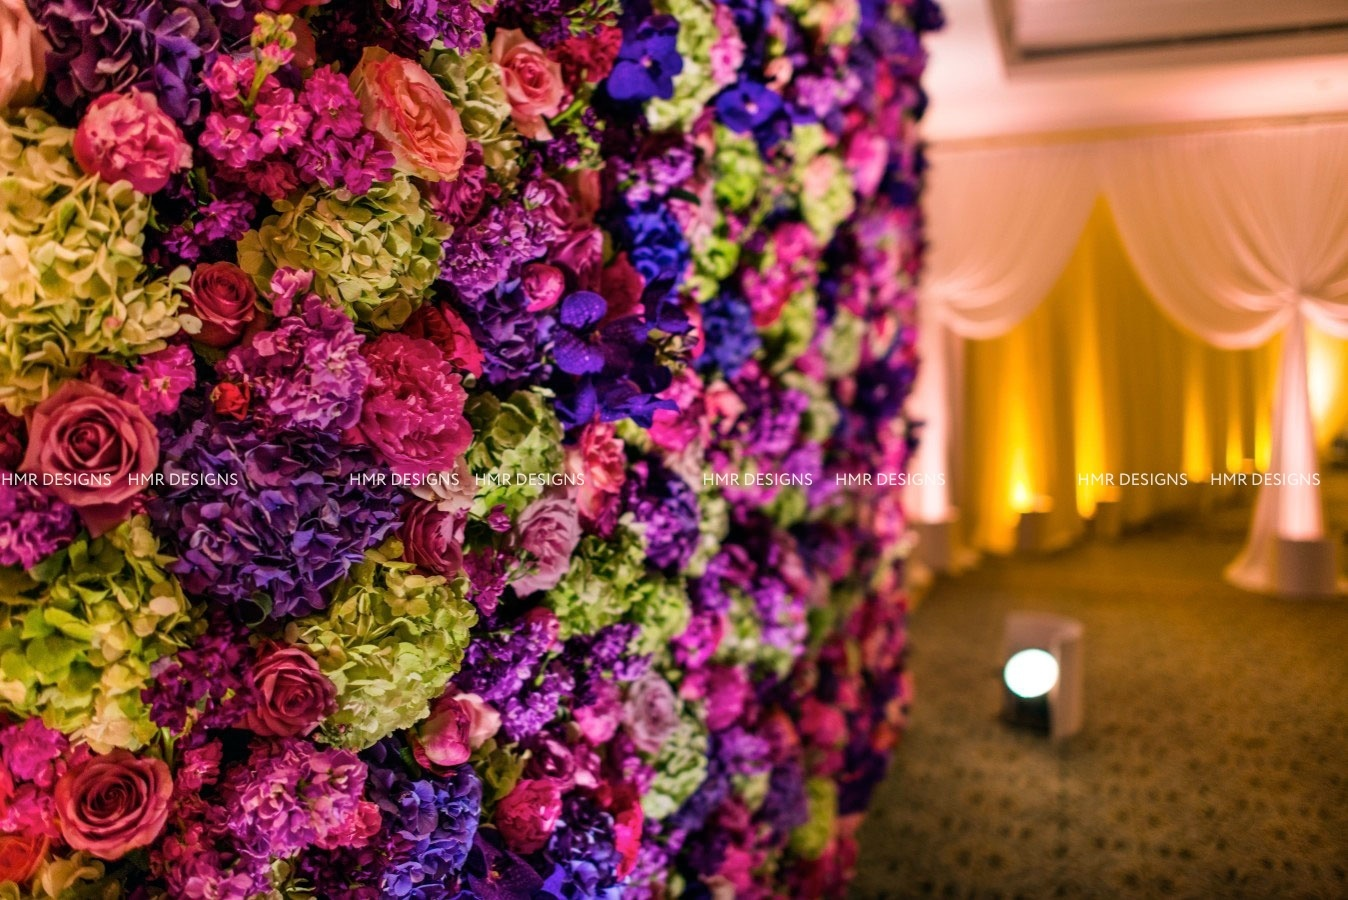 Floral Wall photobooth by HMR Designs